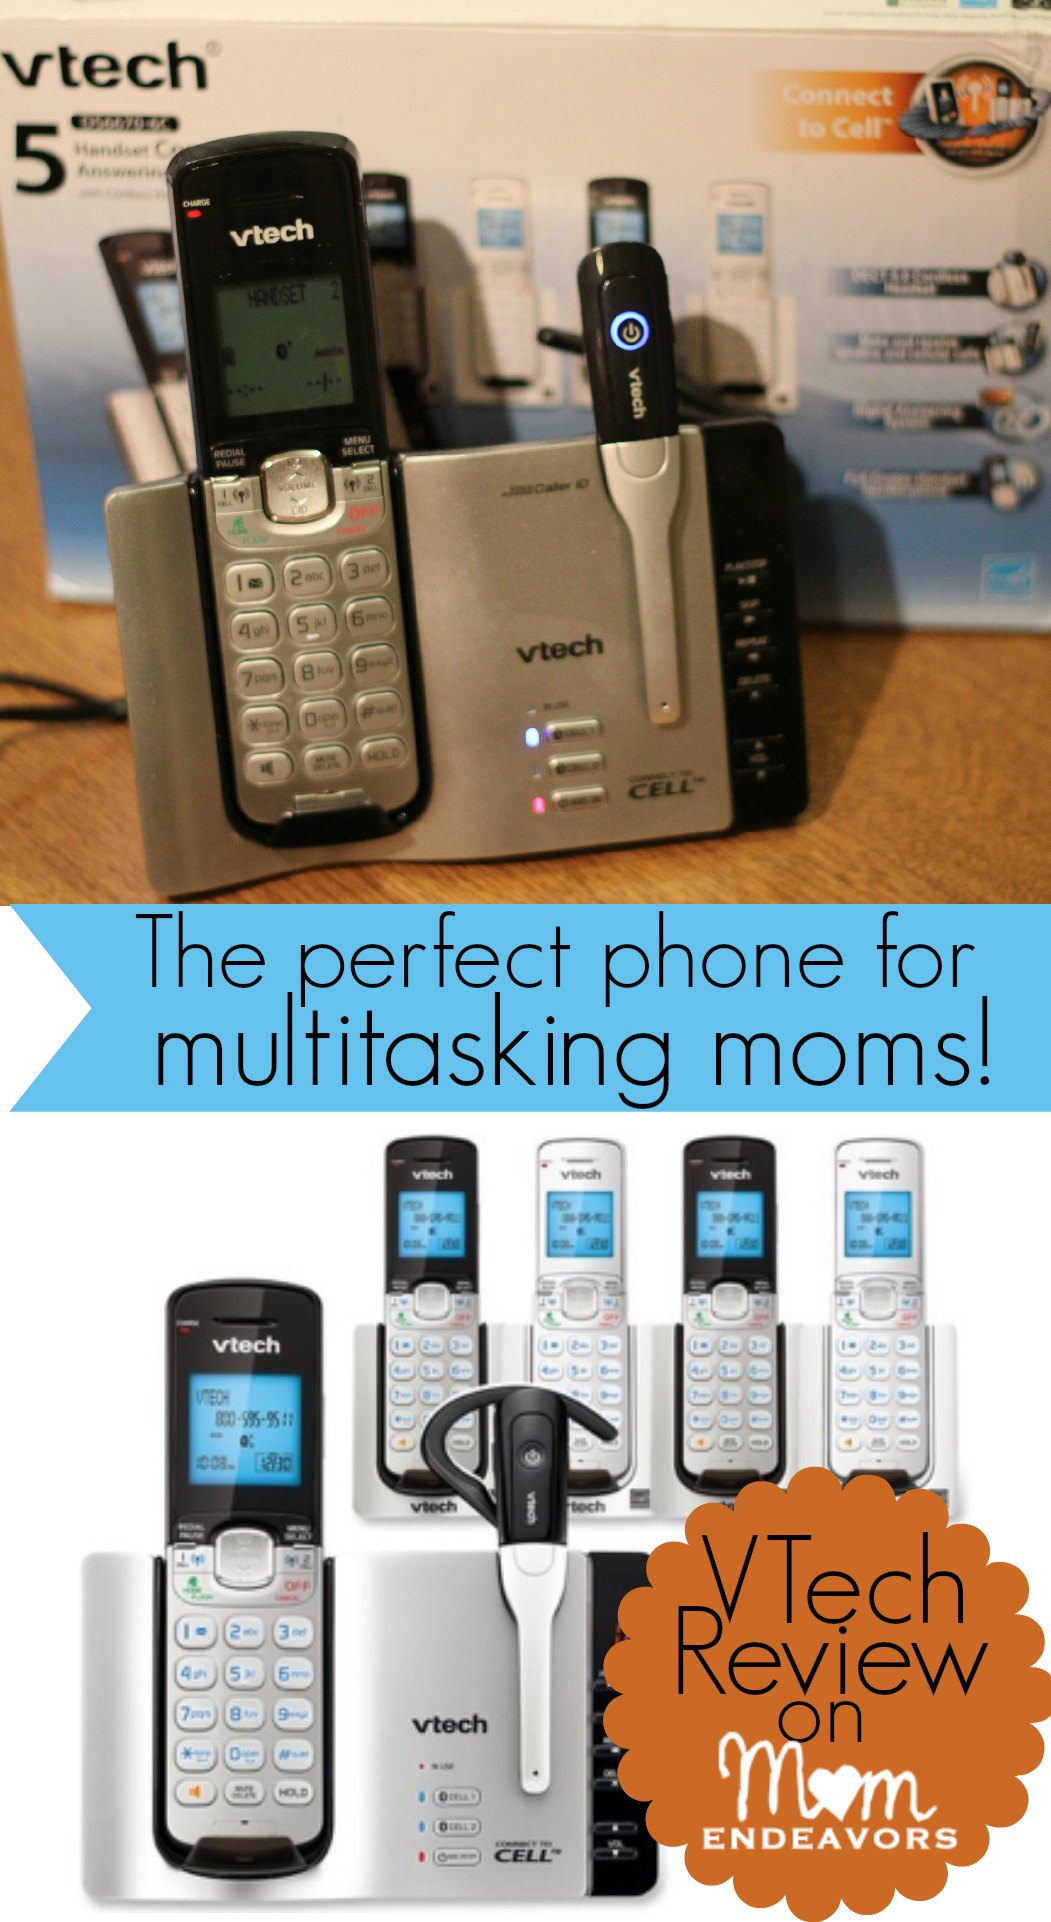 VTech Connect to Cell Phone Review